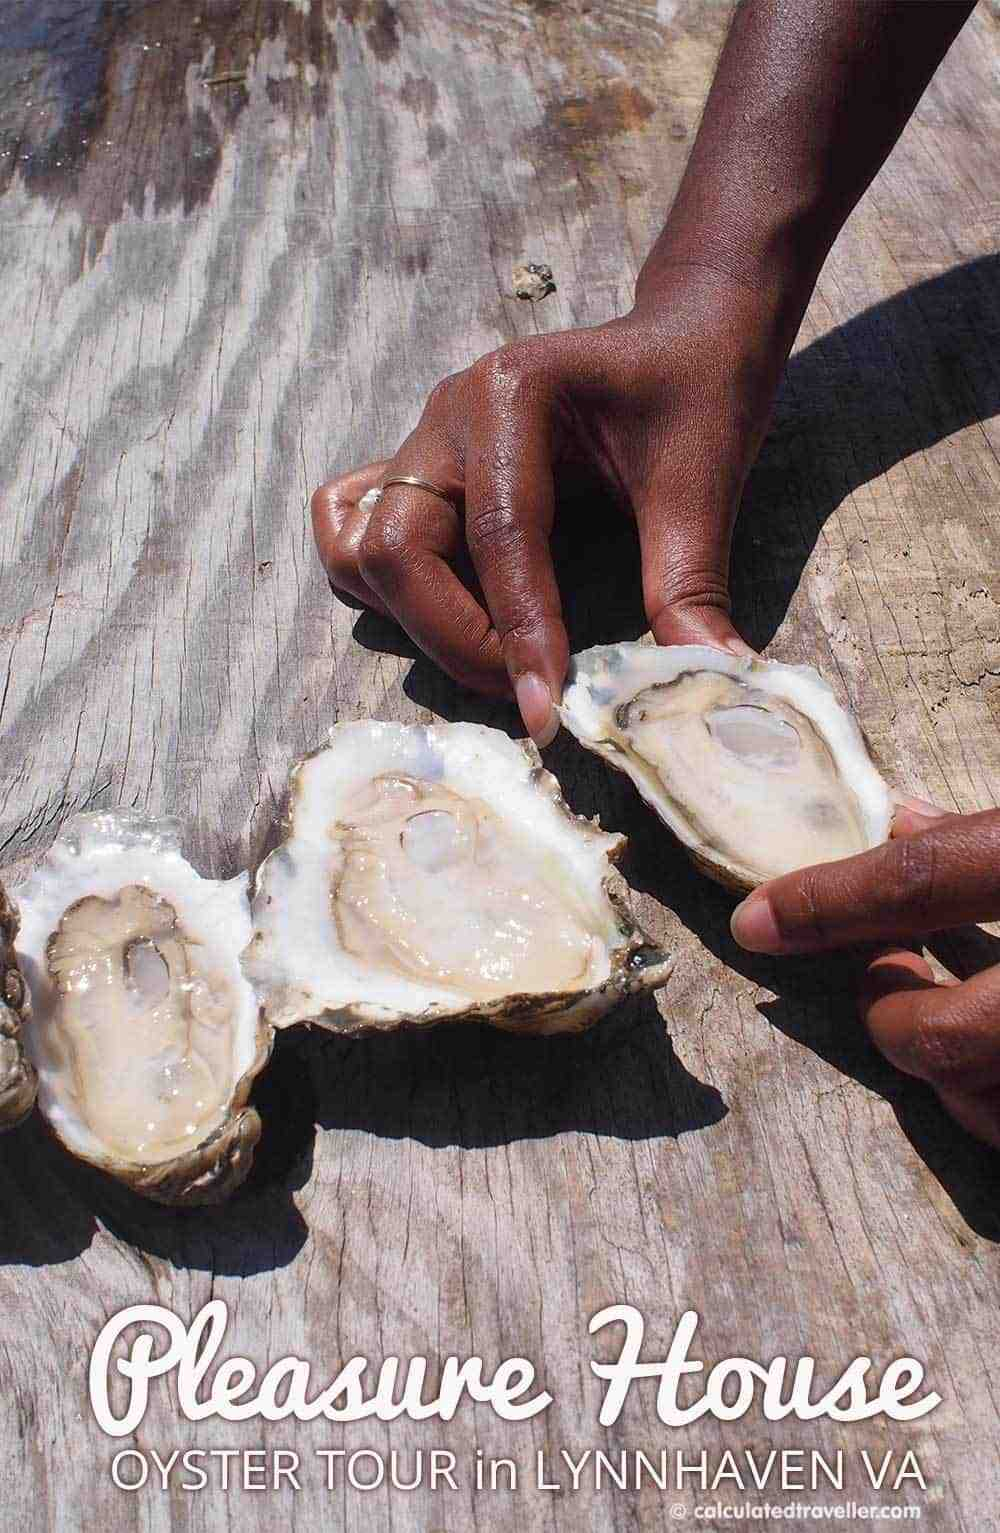 A Pleasure House Oyster Tour in Lynnhaven Virginia by Calculated Traveller Magazine